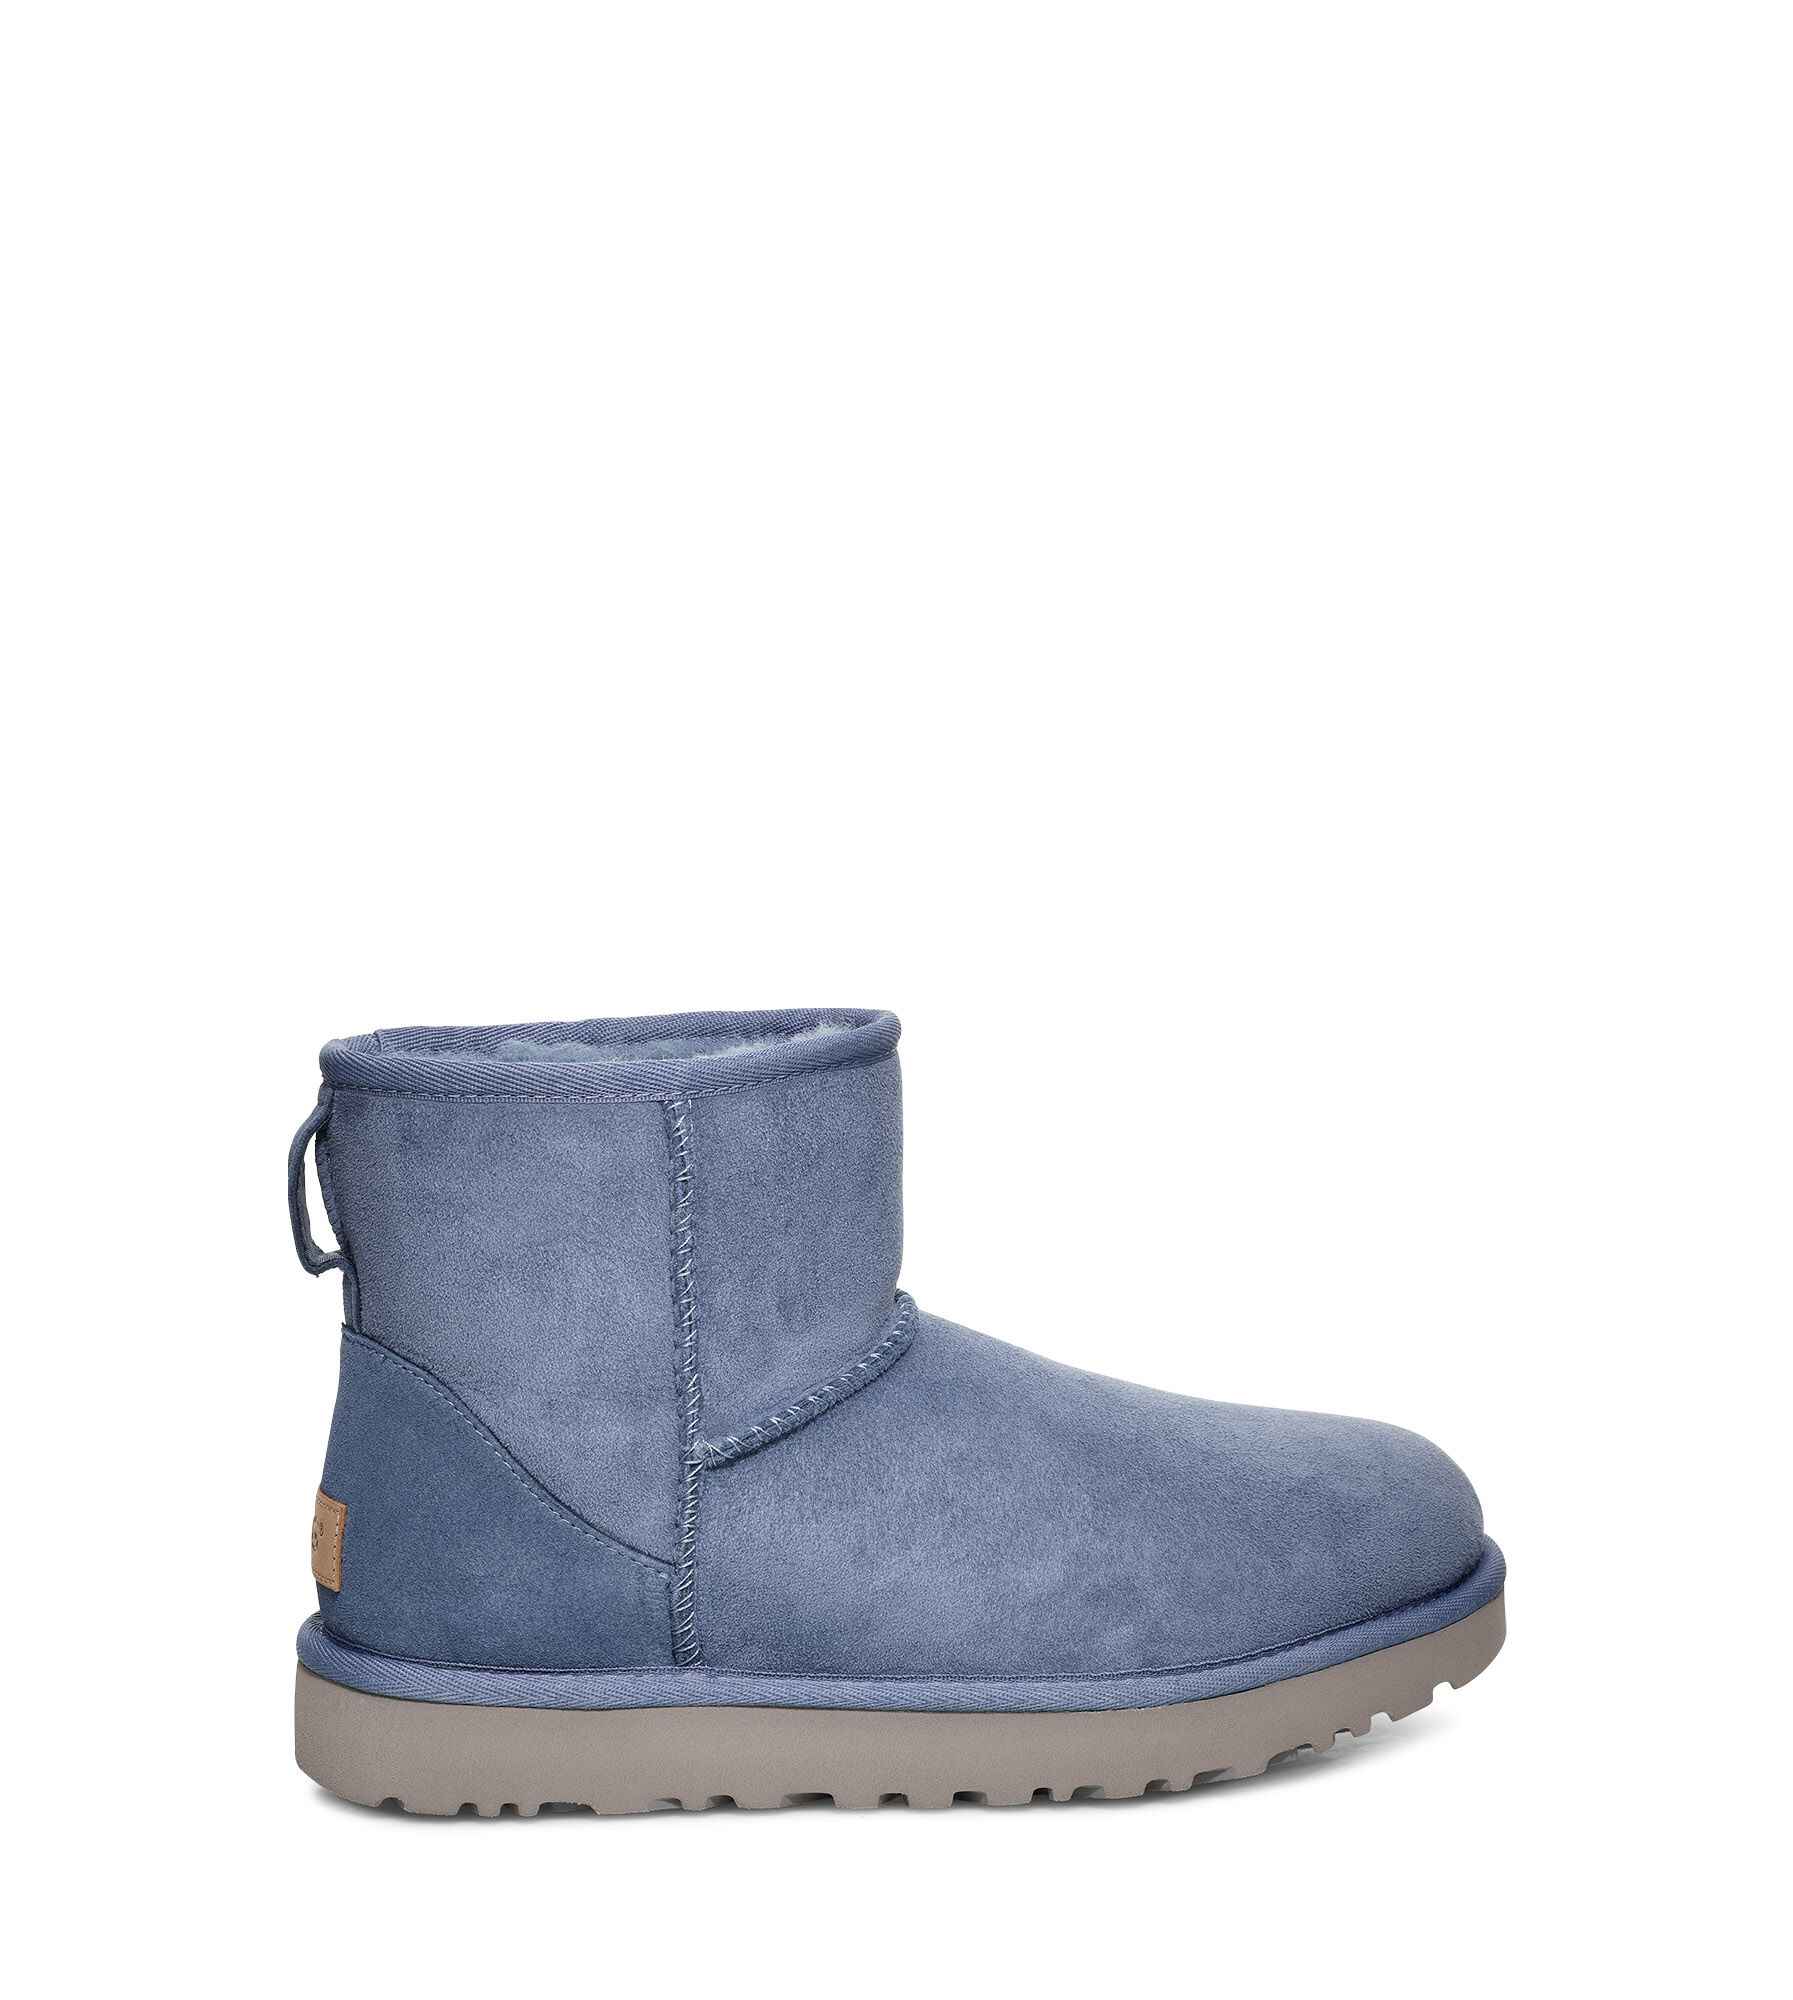 Women's Blue Suede Classic Boots | UGG